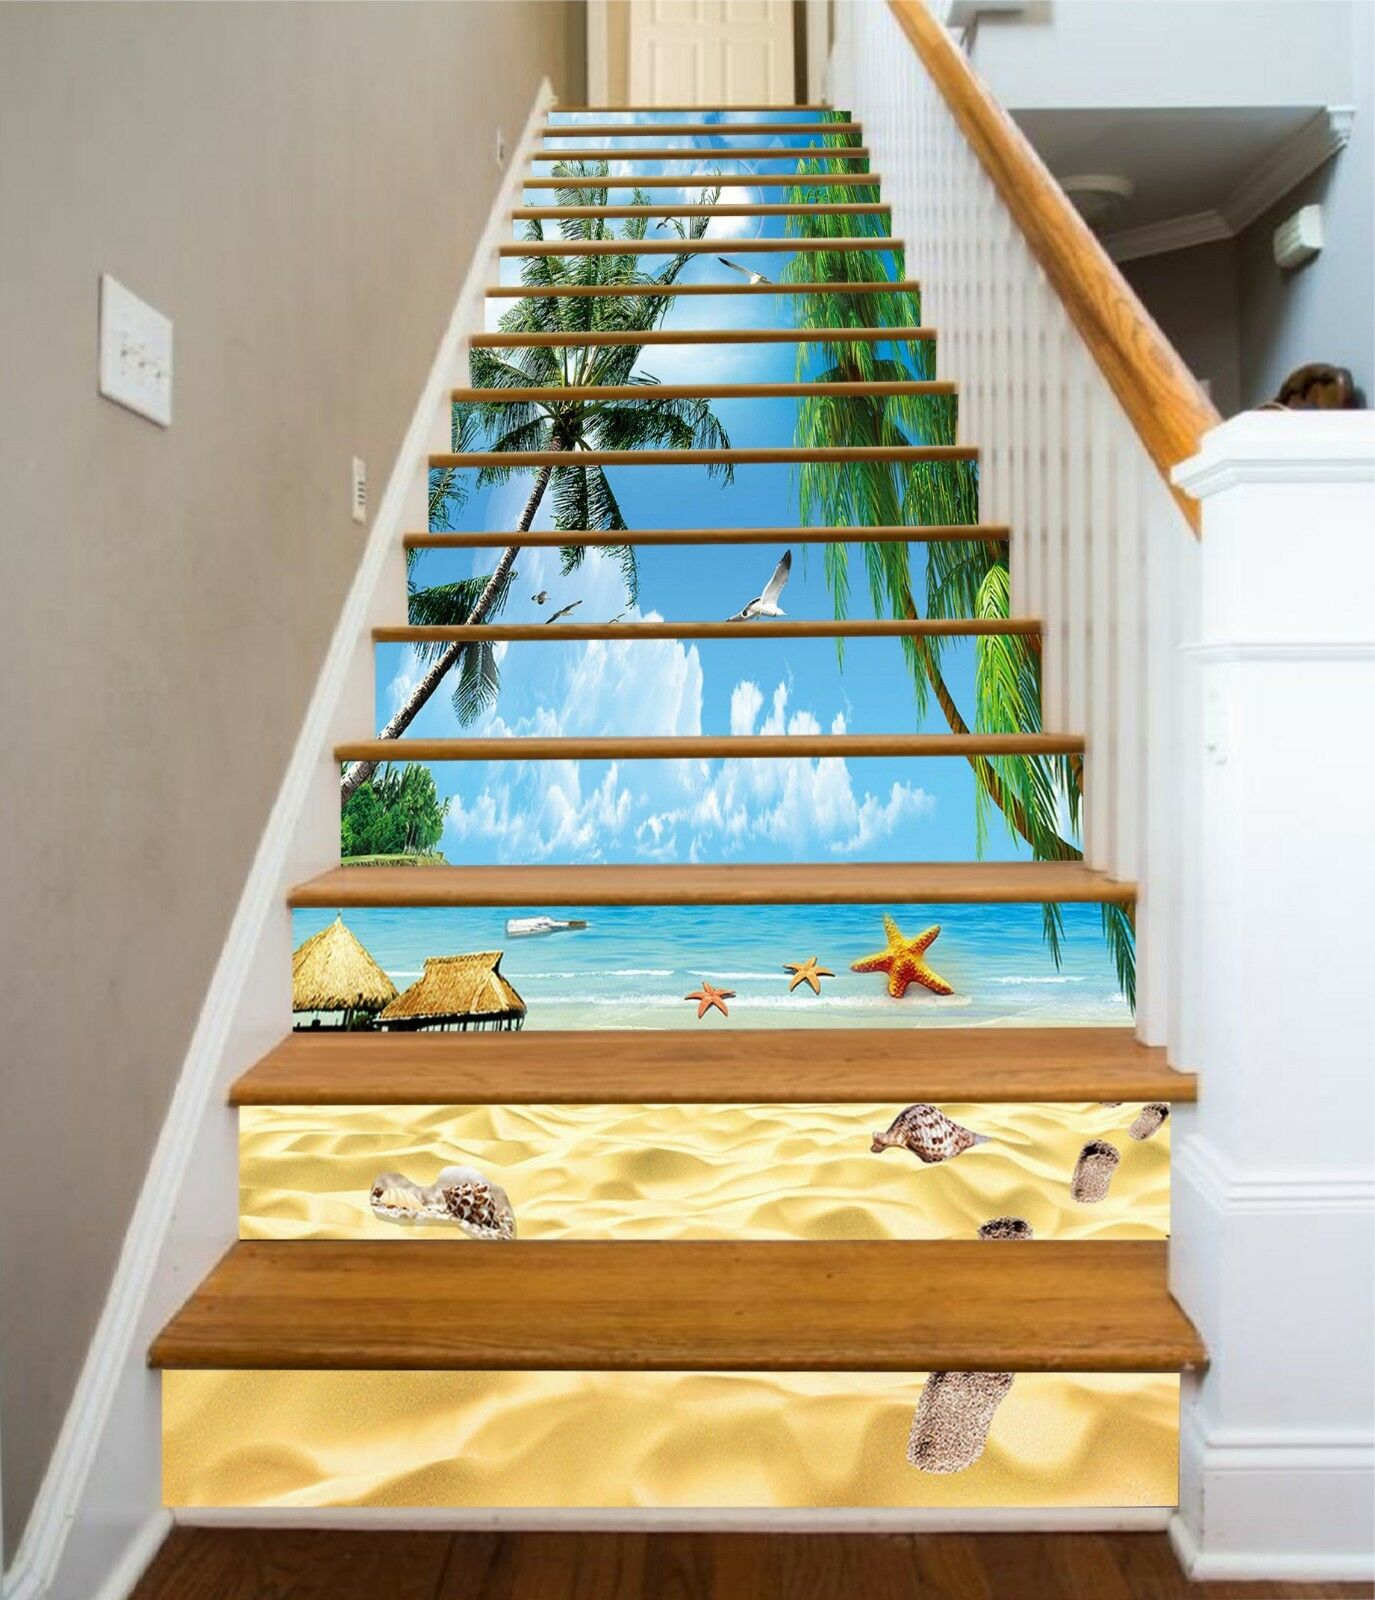 3D Beach Sky 2 Stair Risers Decoration Photo Mural Vinyl Decal Wallpaper US